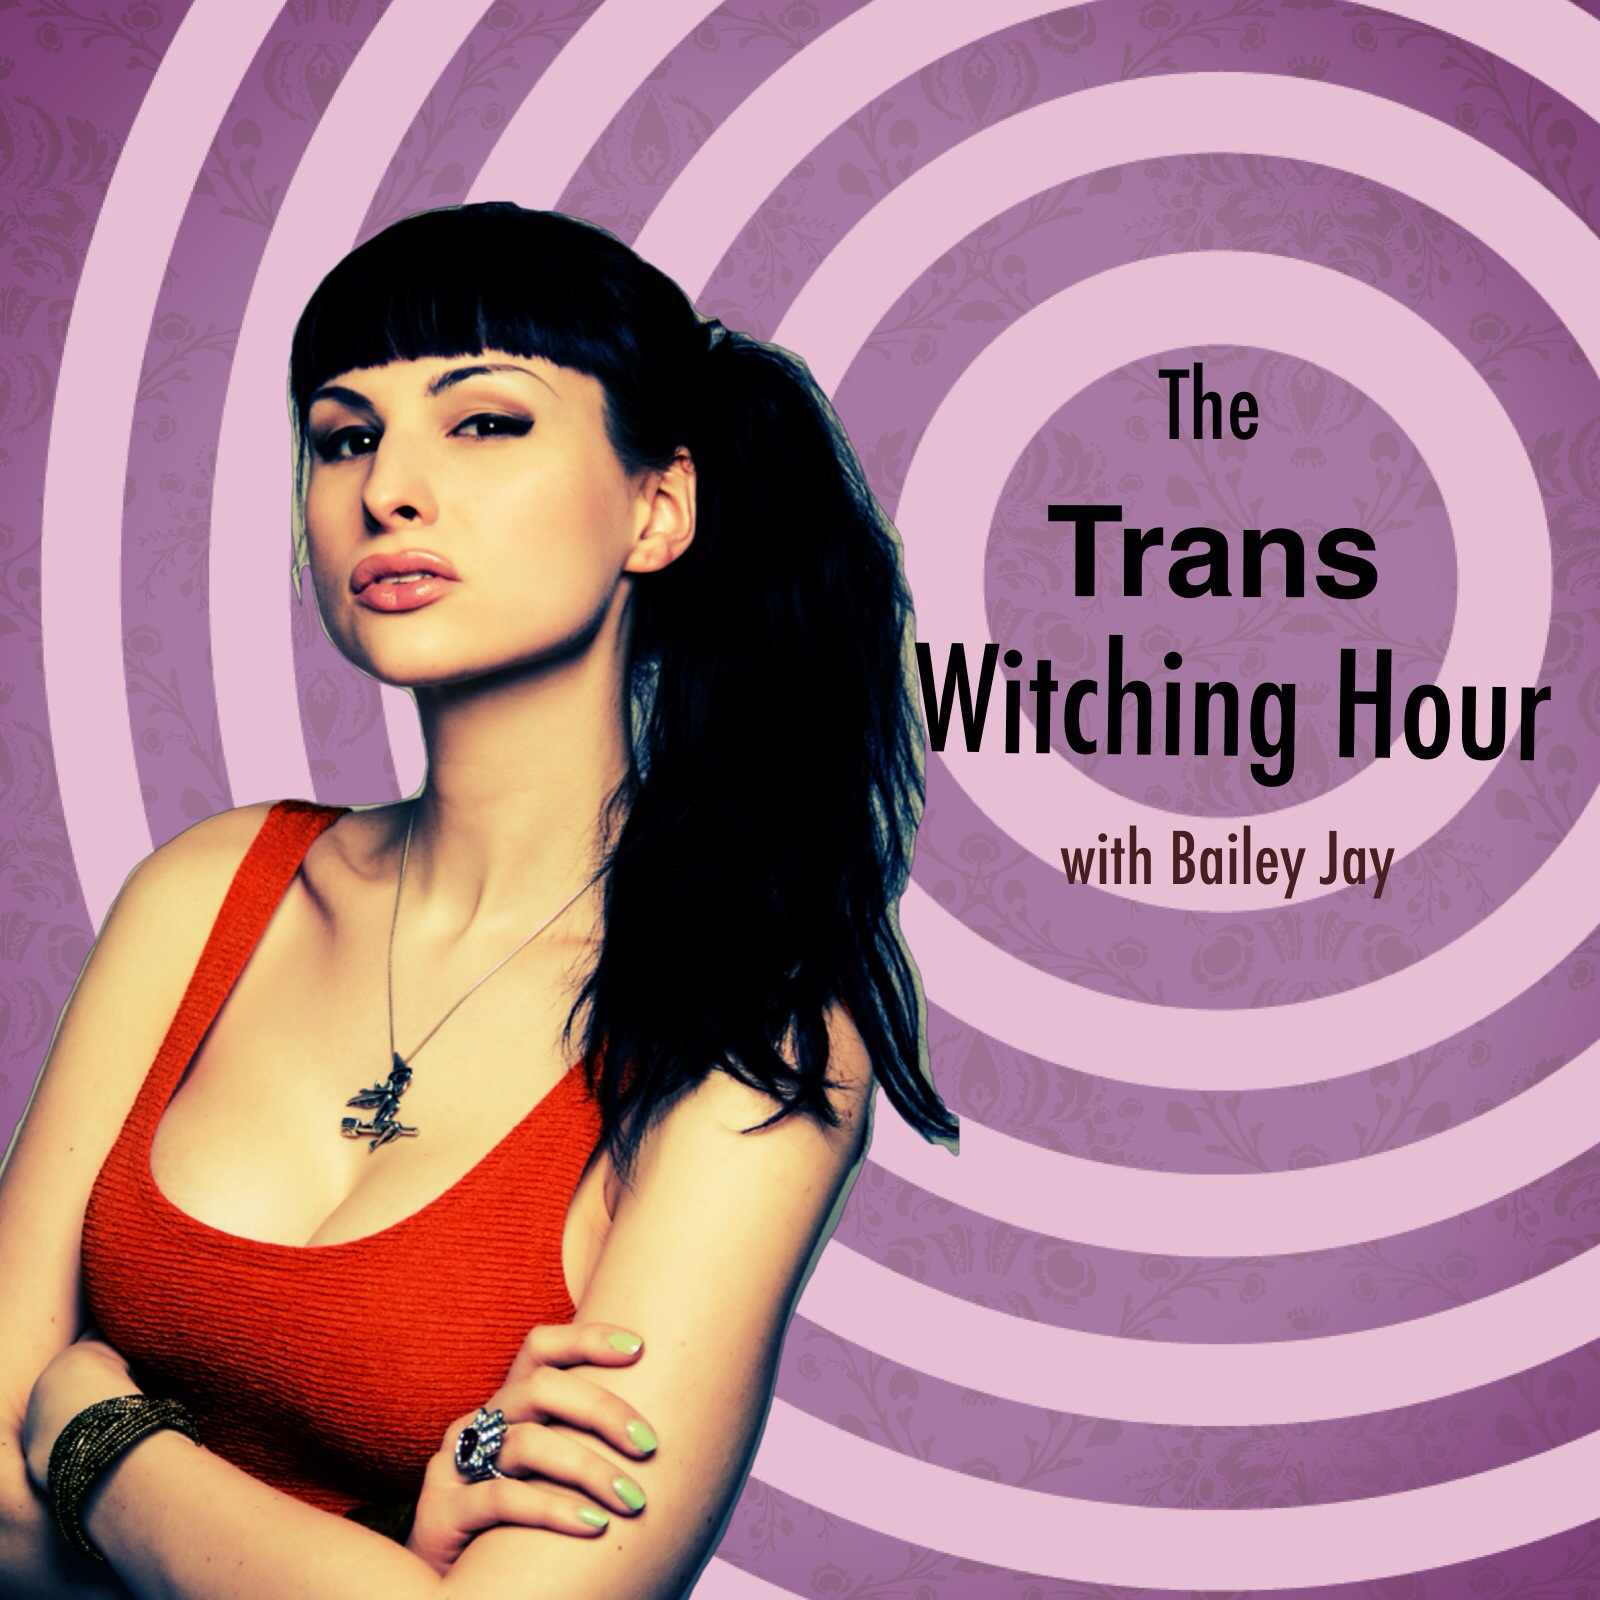 The Trans Witching Hour with Bailey Jay